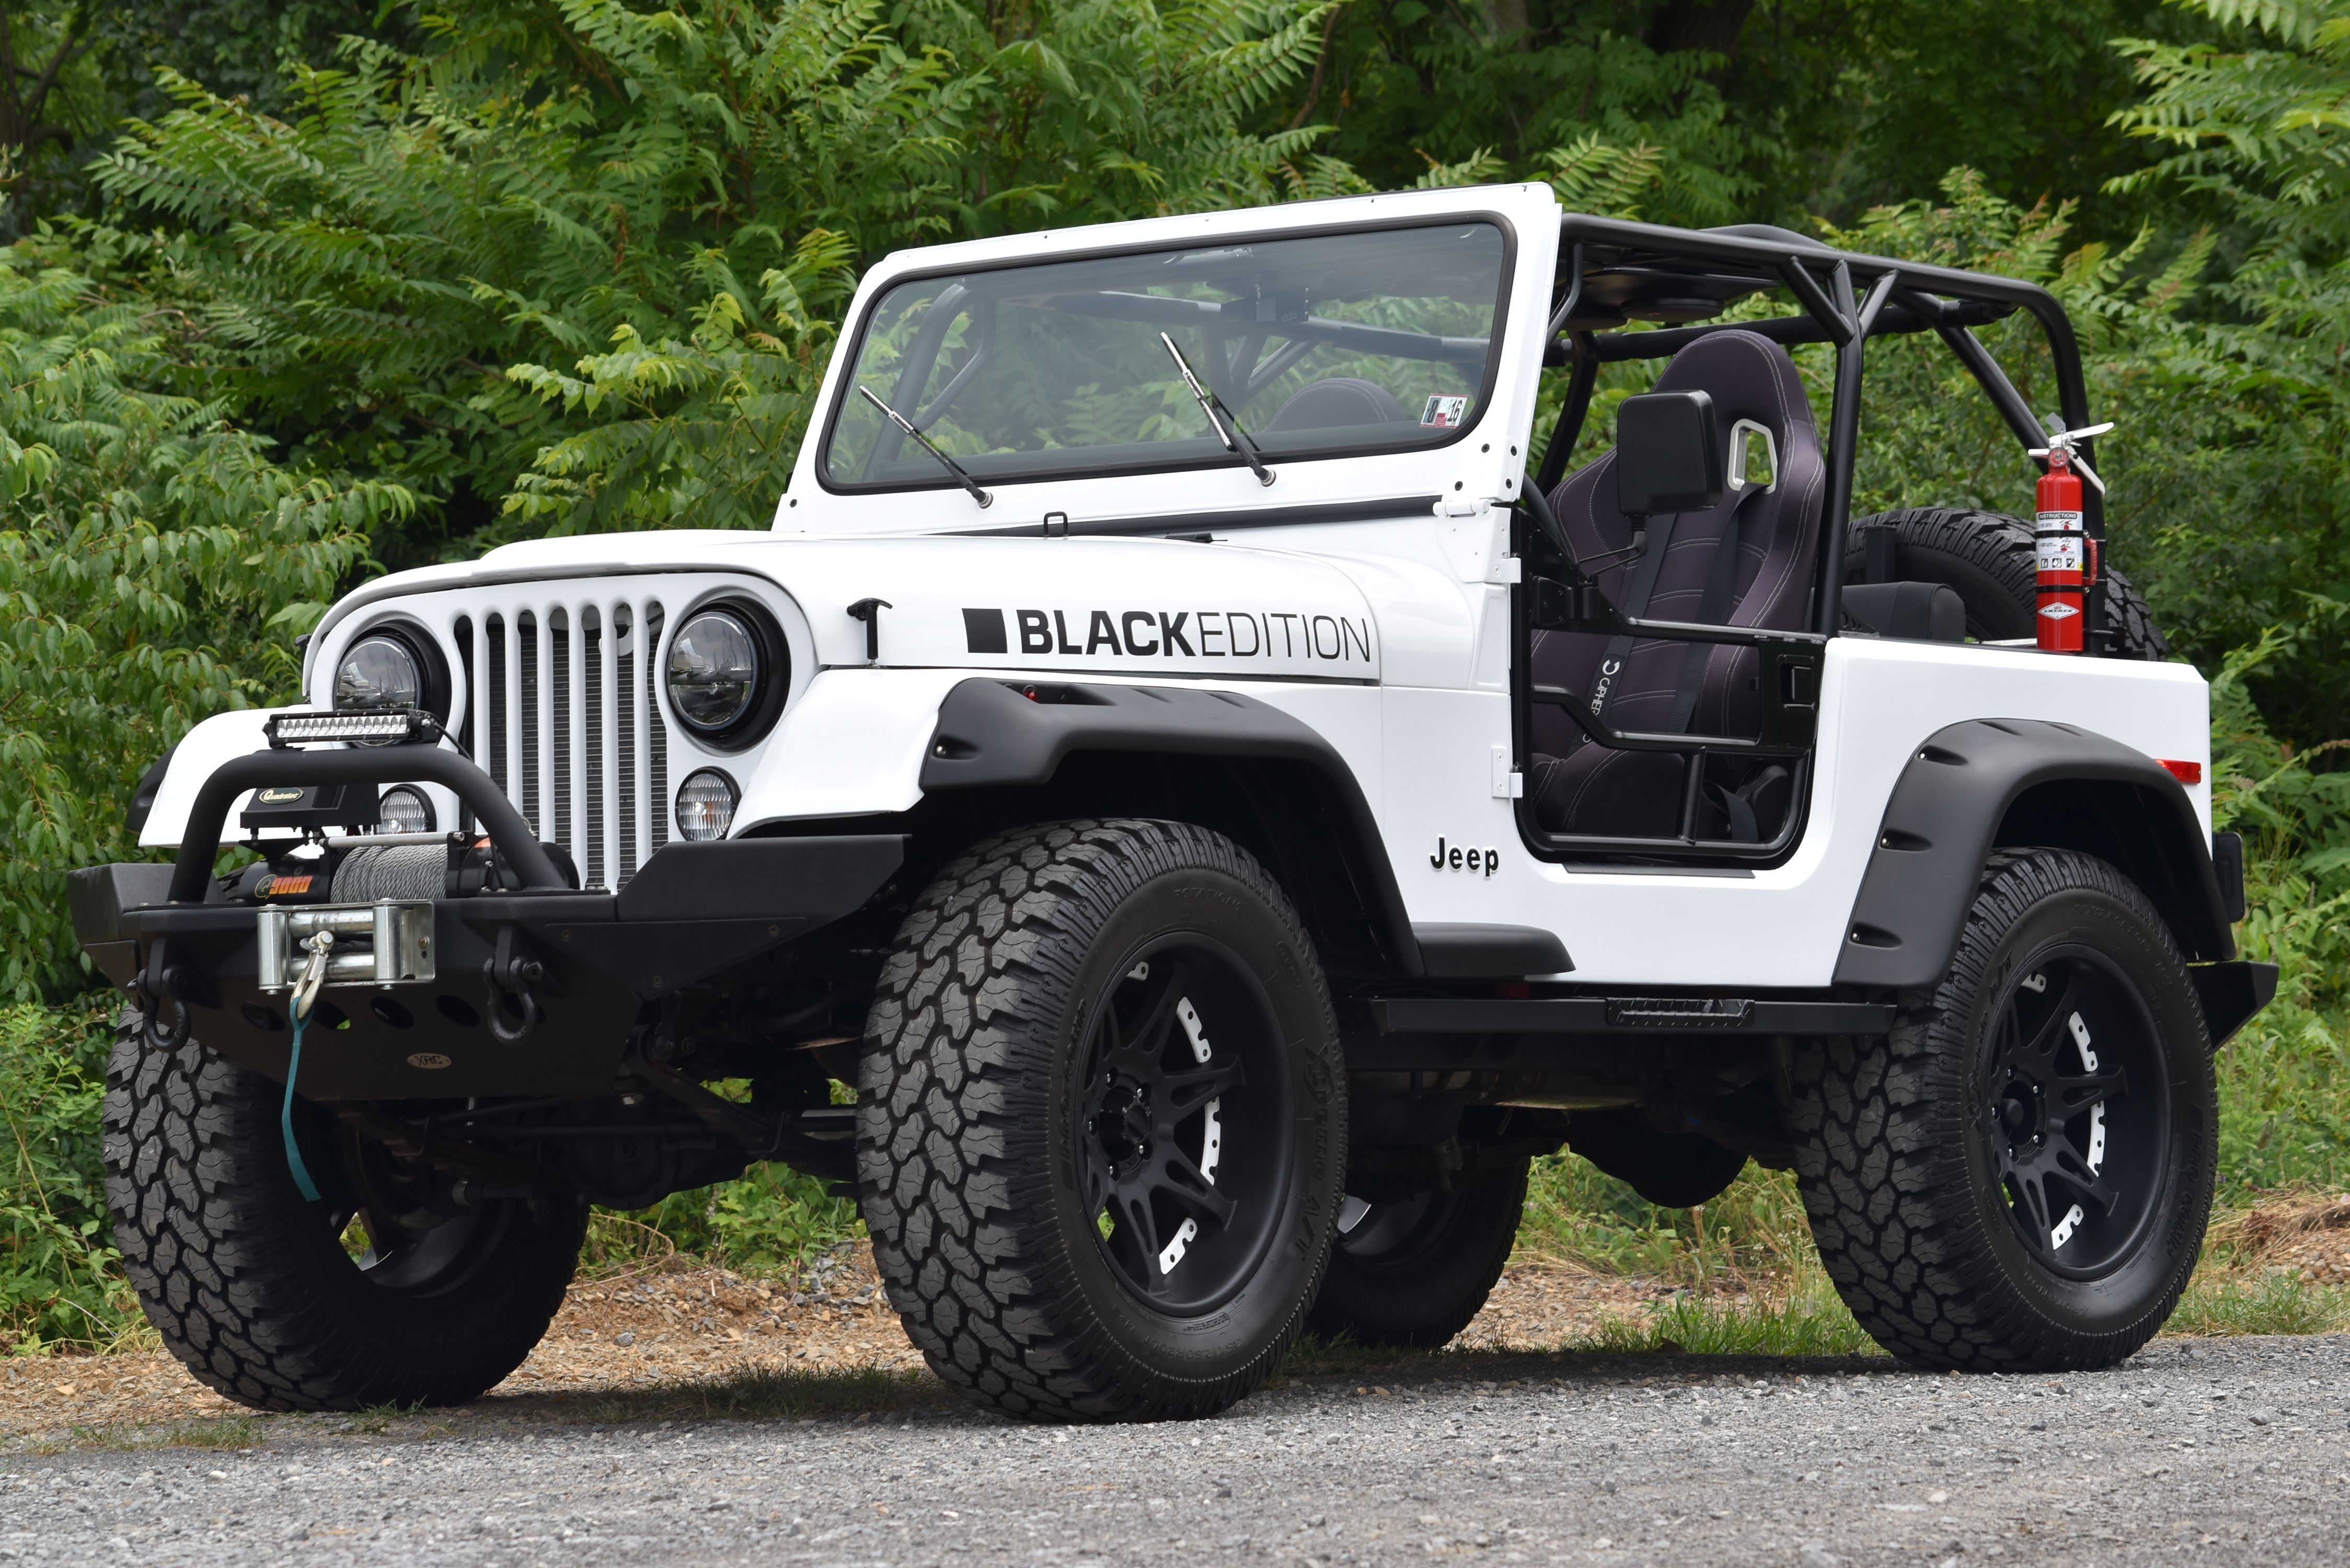 hight resolution of this beautifully restored black edition 1980 jeep cj 7 has been a complete frame off build and features a 347 c i ford v8 motor fully custom roll cage